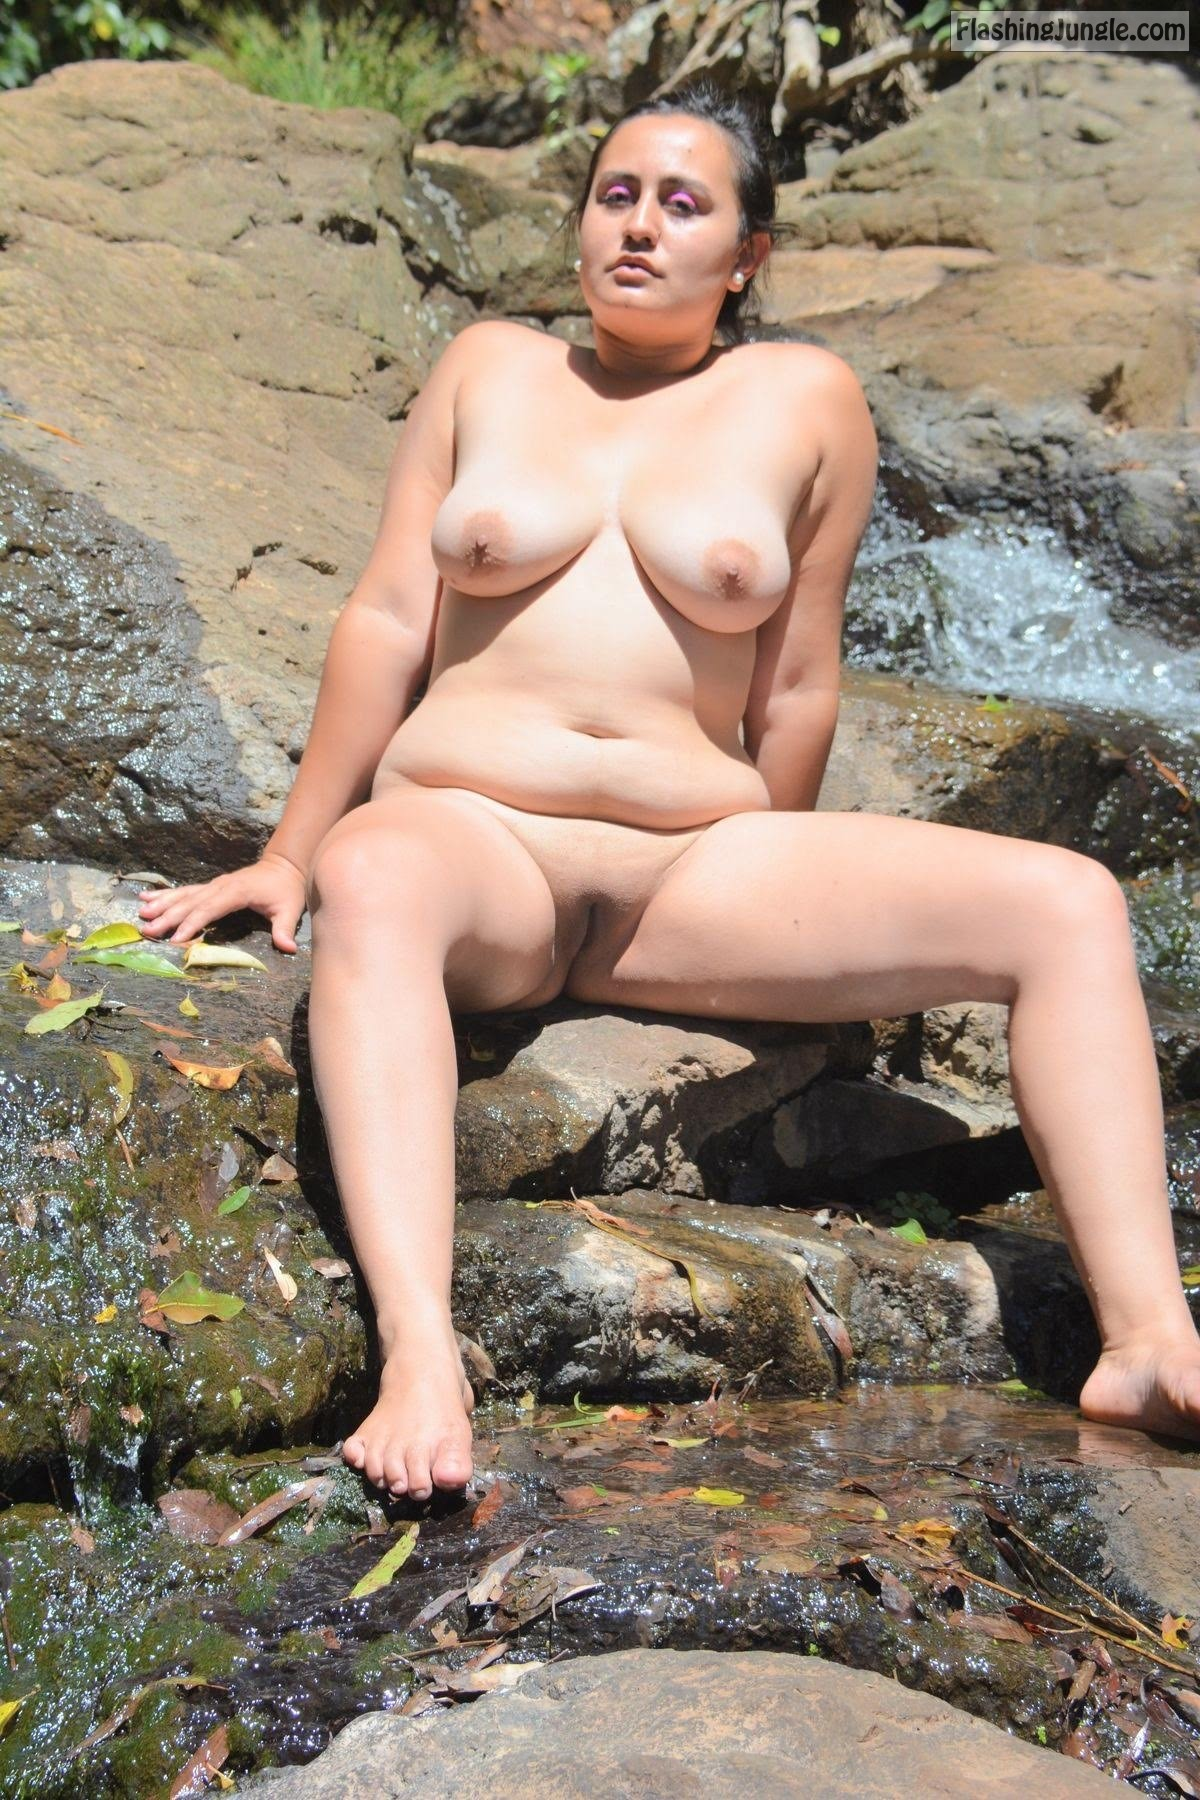 Valeria mcdougall Asian slut real nudity